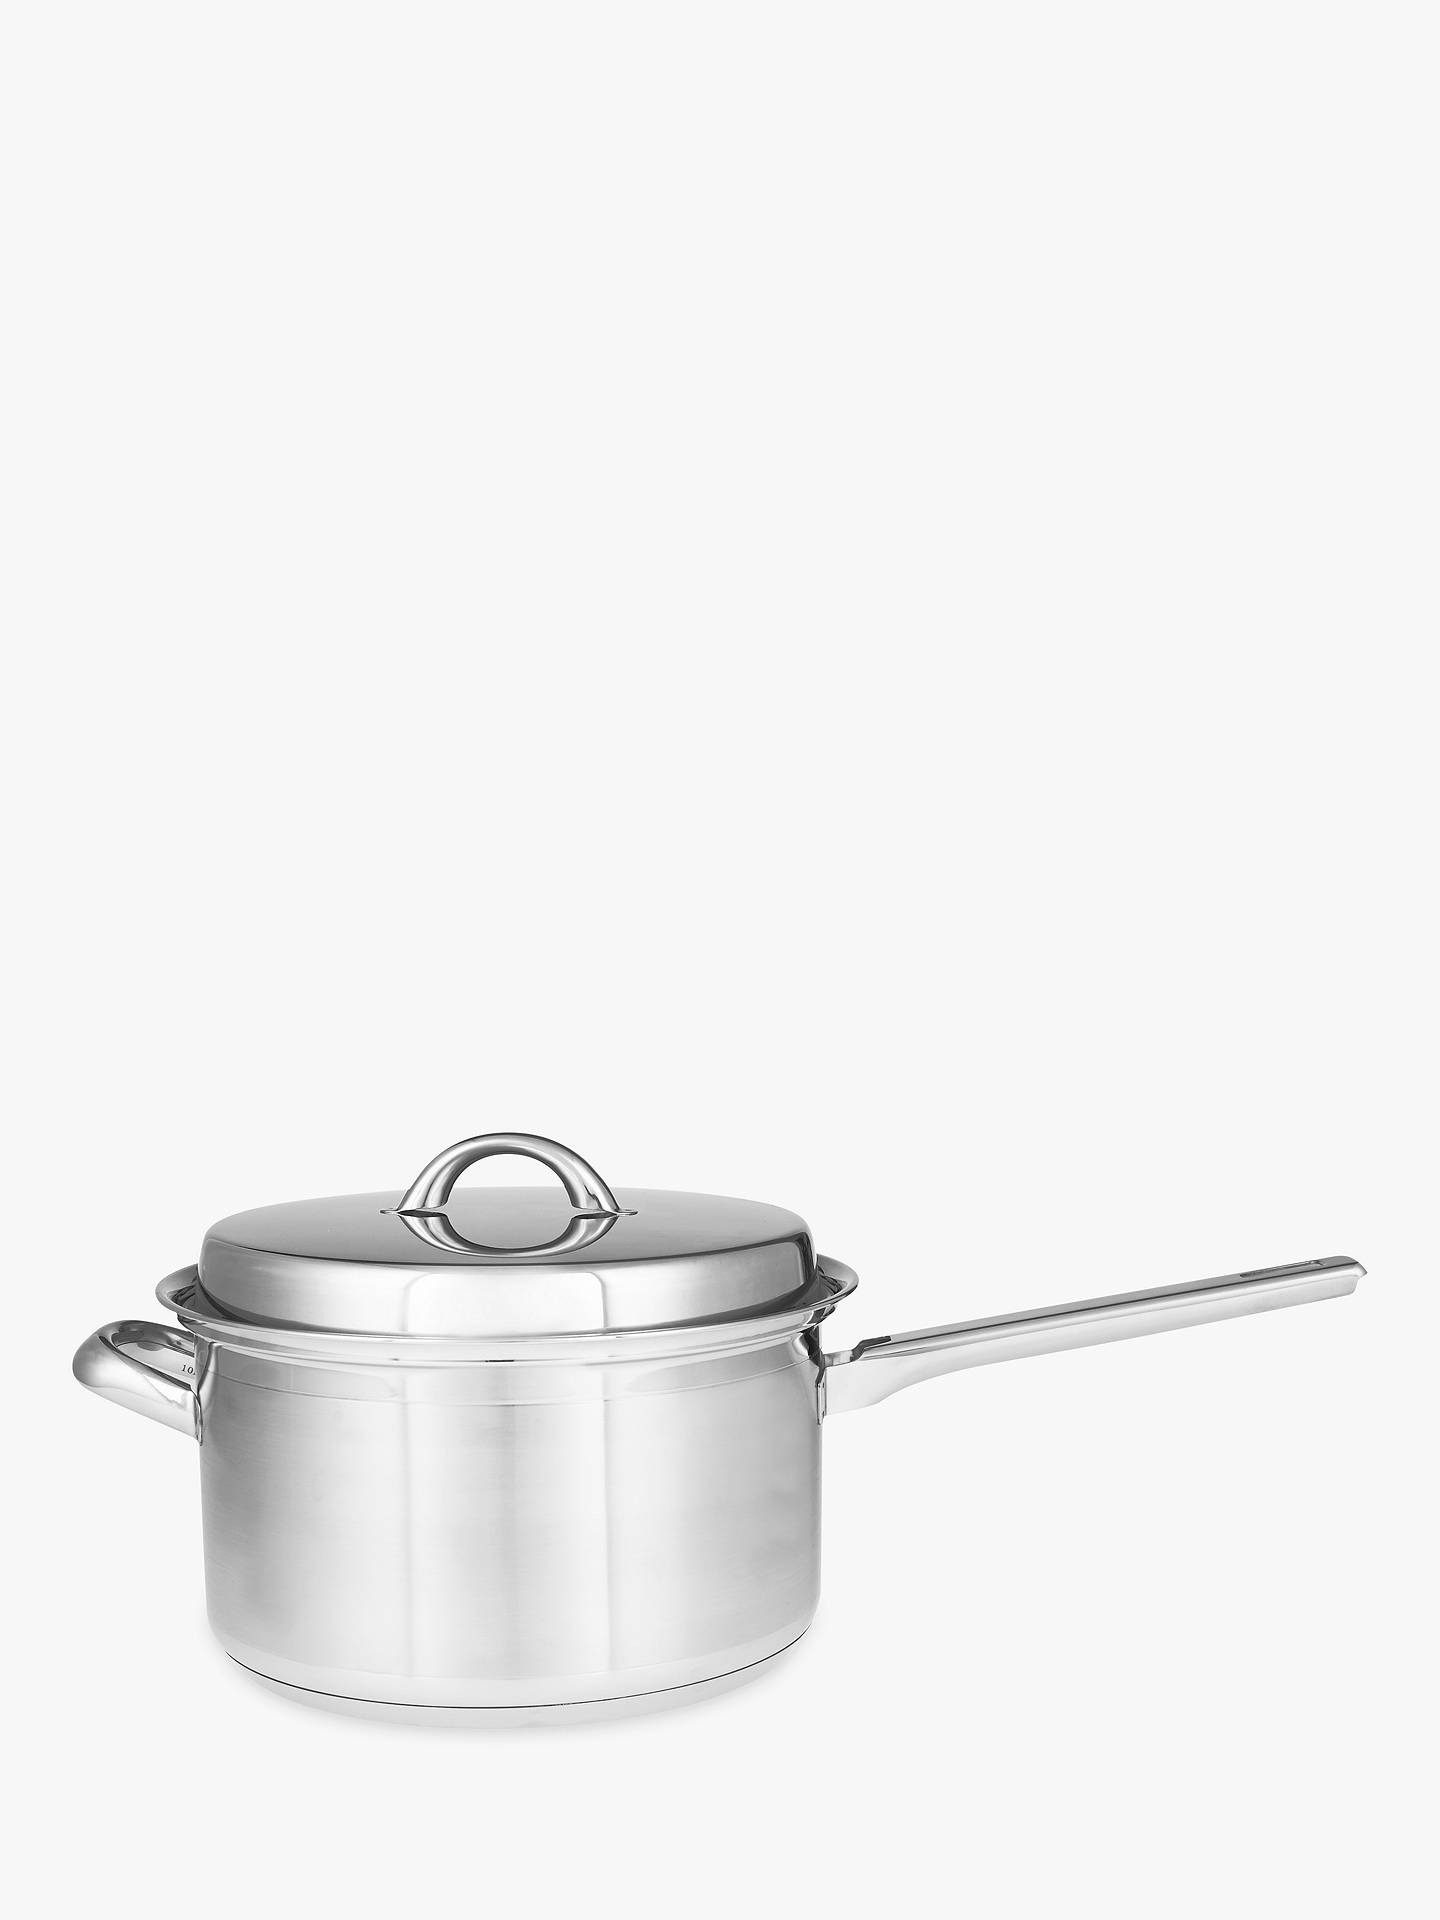 BuyJohn Lewis & Partners Classic Lidded Saucepan with Helper Handle, 22cm, 3.7L Online at johnlewis.com